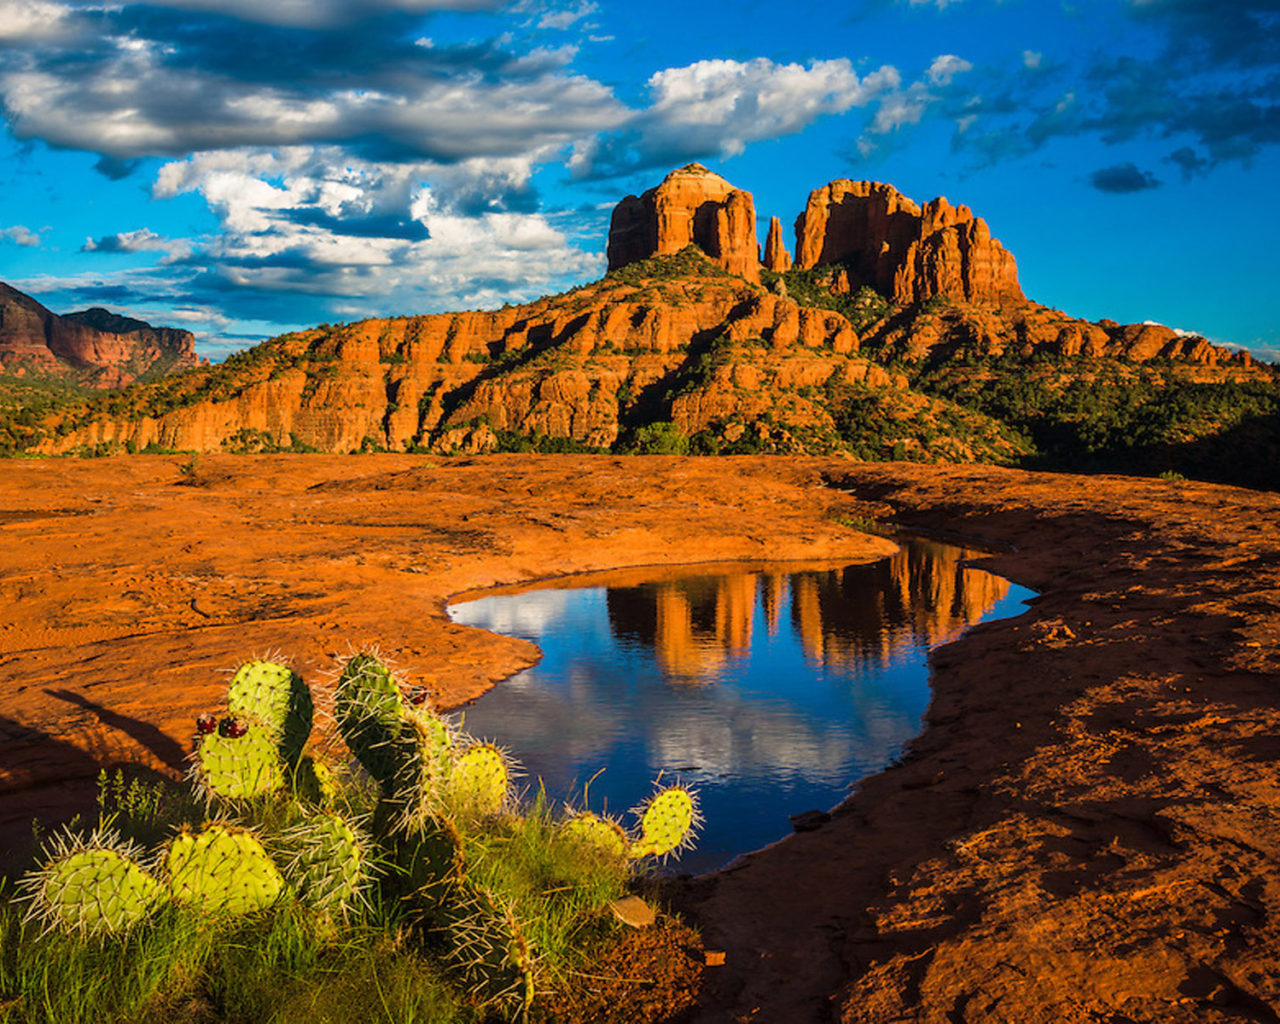 Fall Wallpaper Free Iphone Landscape Nature Cathedral Rock In Sedona Arizona United